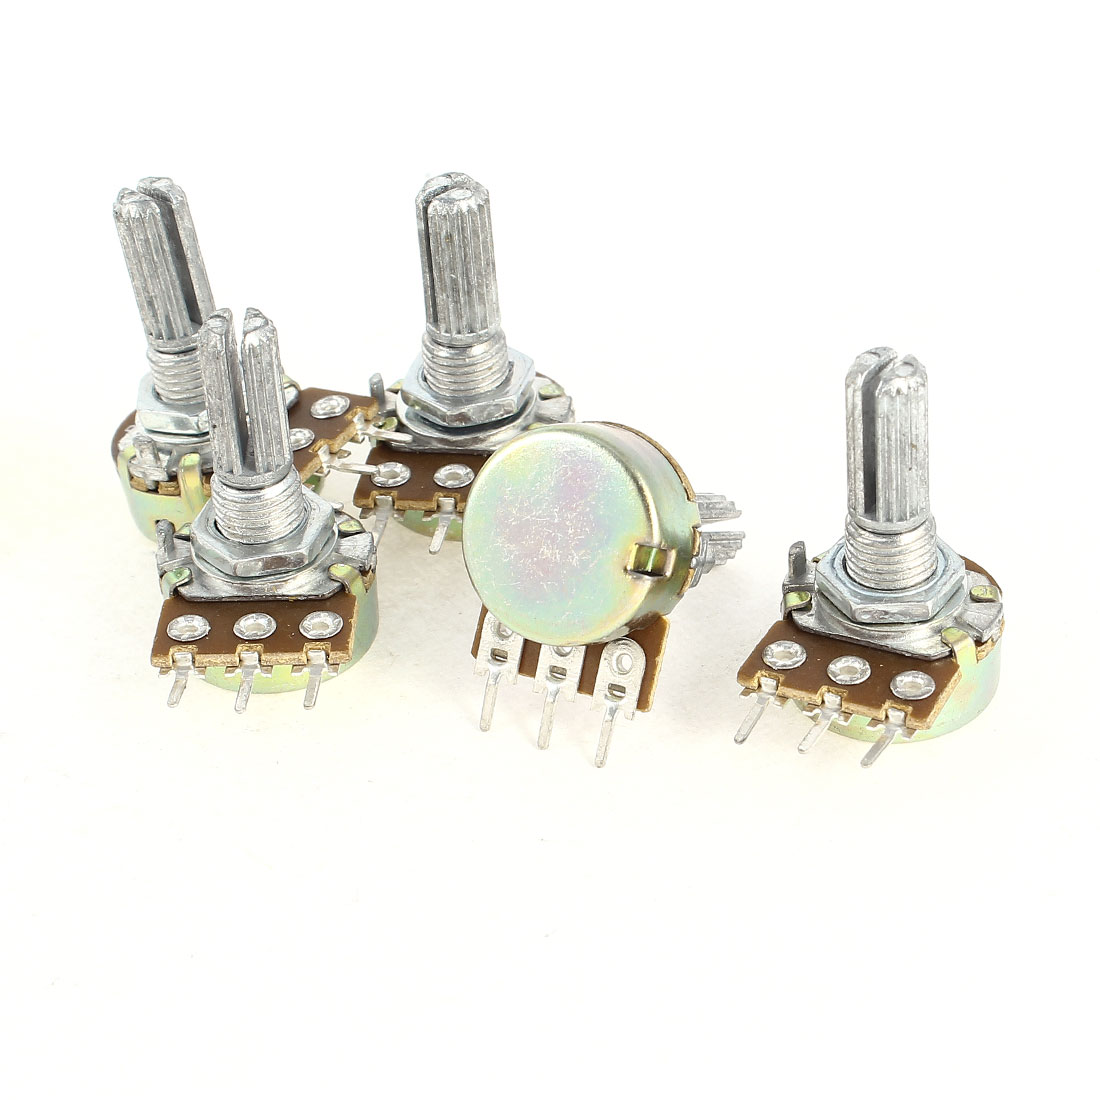 5 Pieces B250K 250K Ohm Rotating Shaft Single Linear Rotary Taper Potentiometers